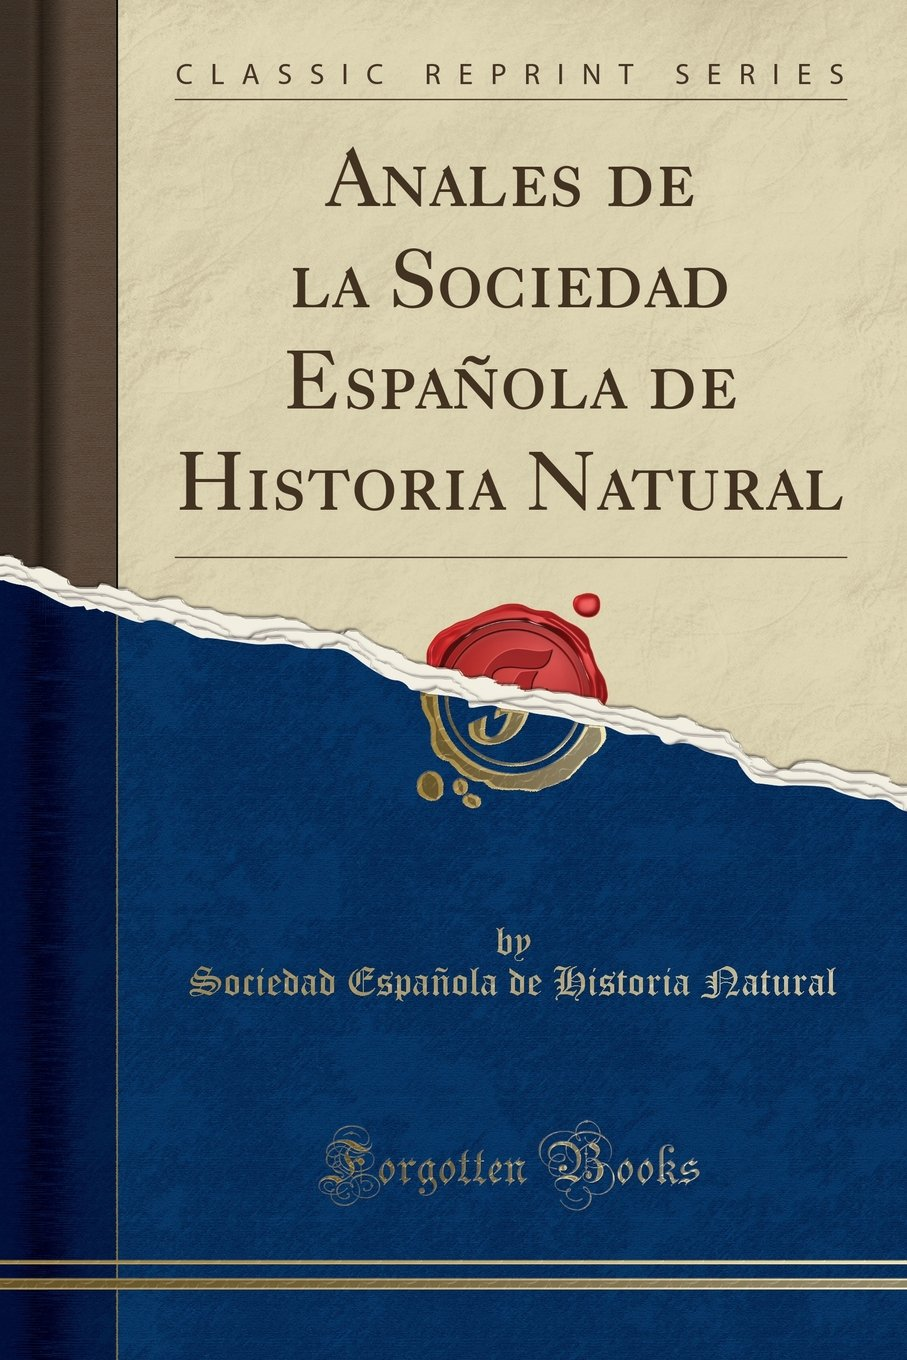 Anales de la Sociedad Española de Historia Natural (Classic Reprint) (Spanish Edition) ebook